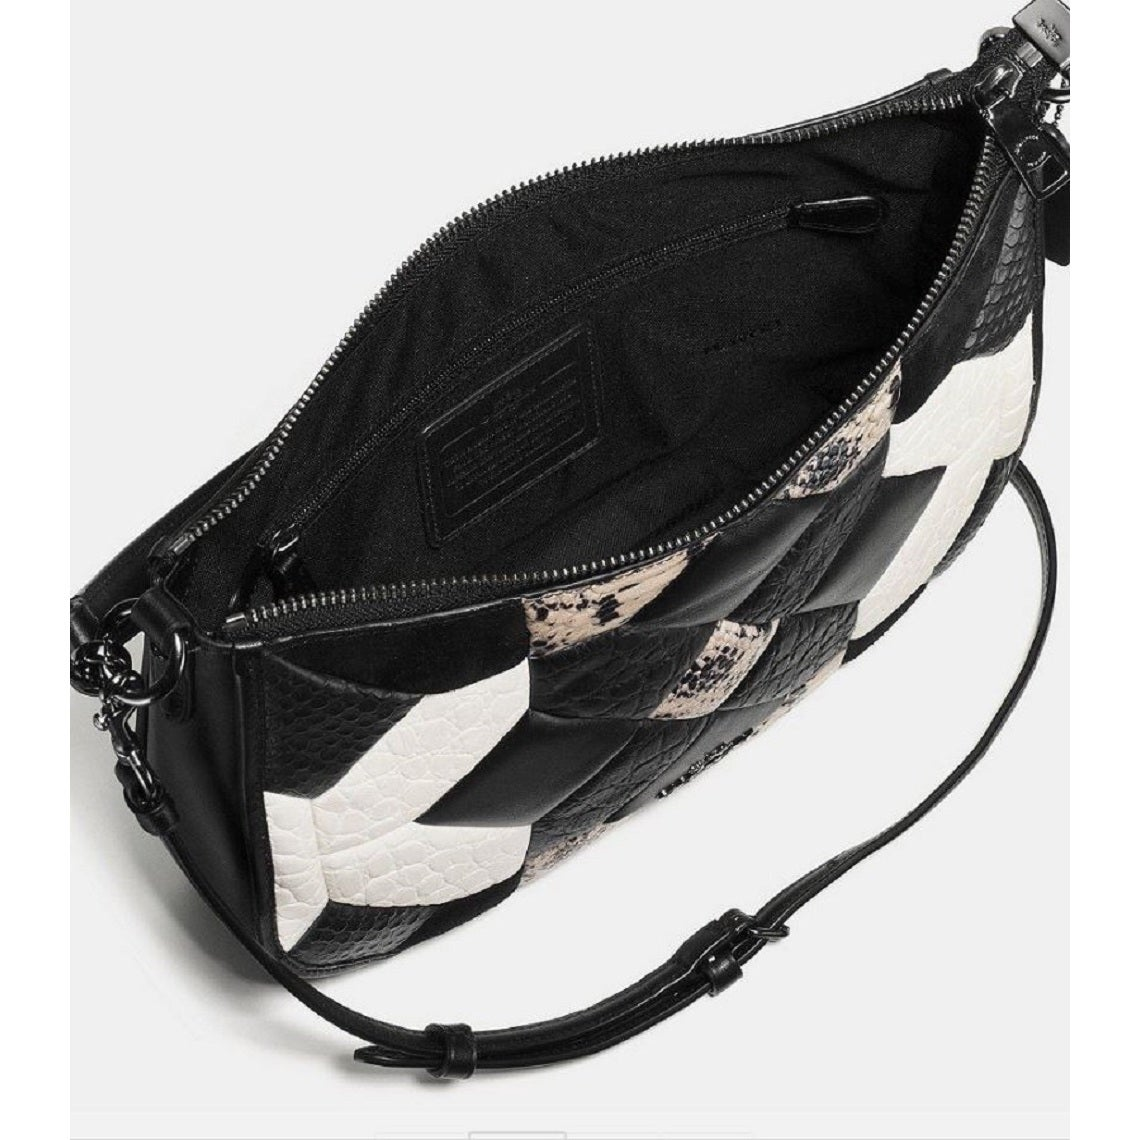 12c0fcc226cc Shop Coach Black Canyon Quilt Chelsea Exotic Leather Crossbody Bag Purse -  Free Shipping Today - Overstock - 13169551